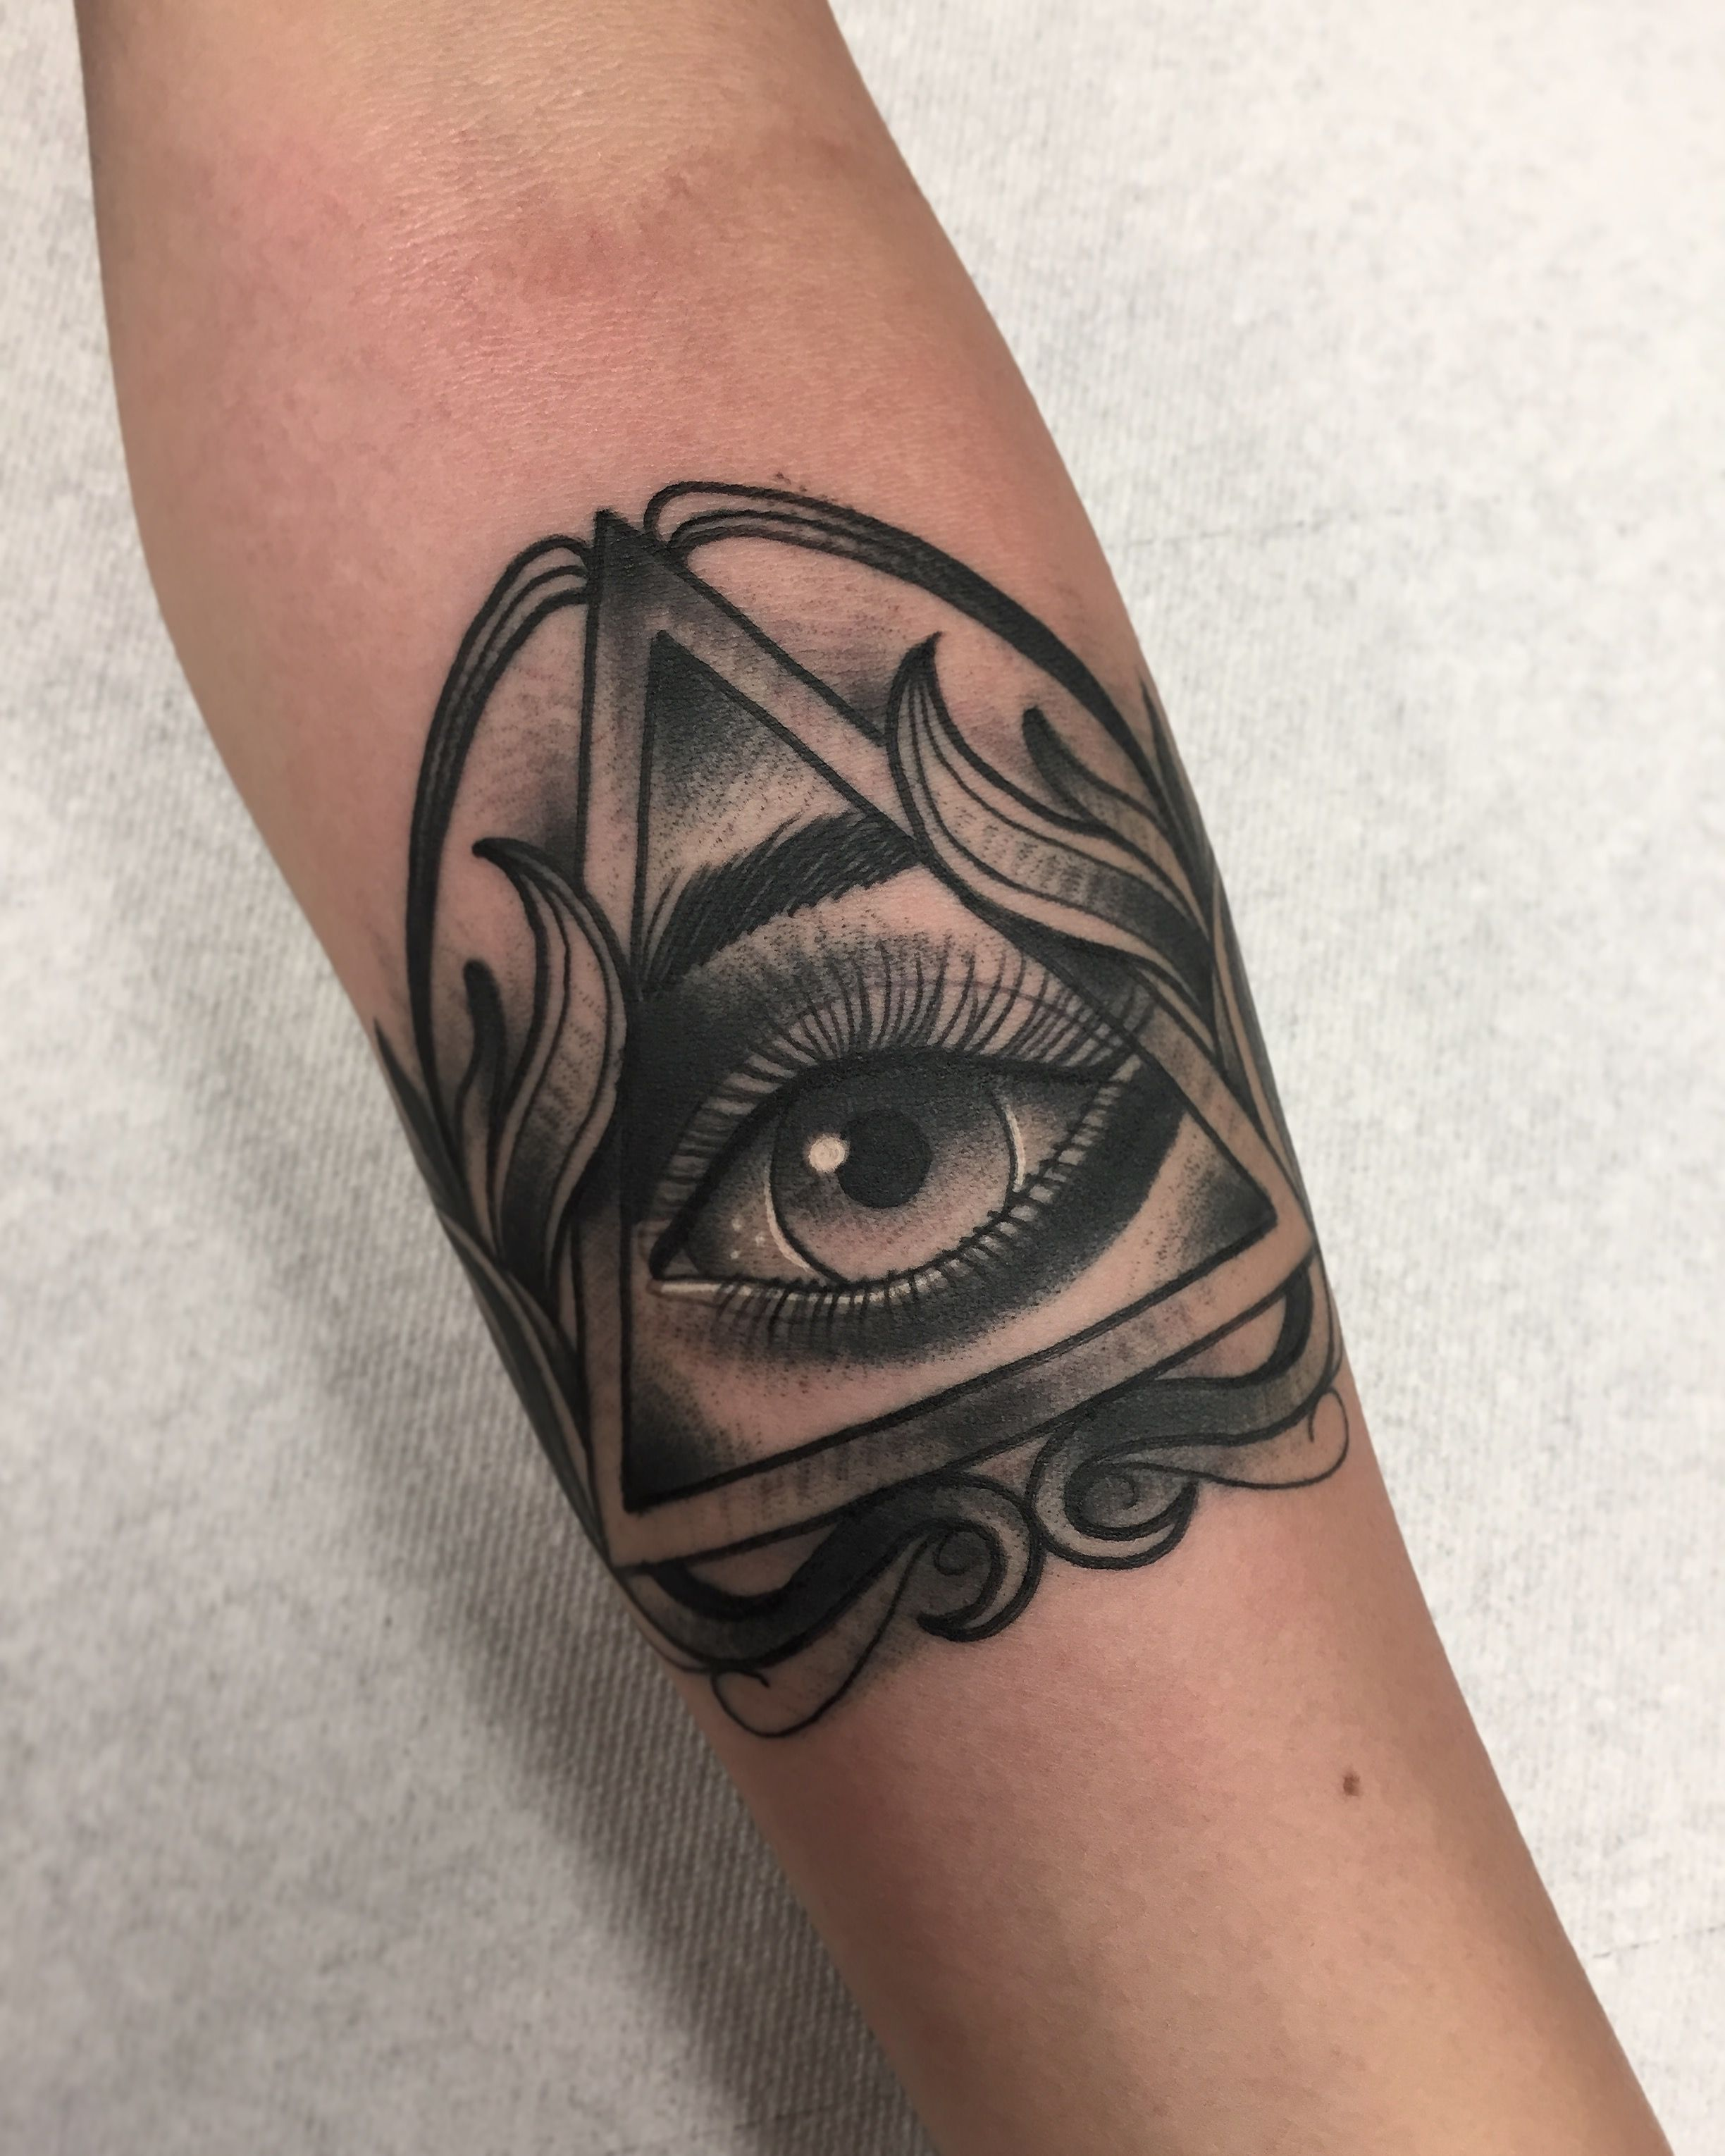 All Seeing Eye By Robert Cabello At Infamous Ink In Pico Rivera Ca